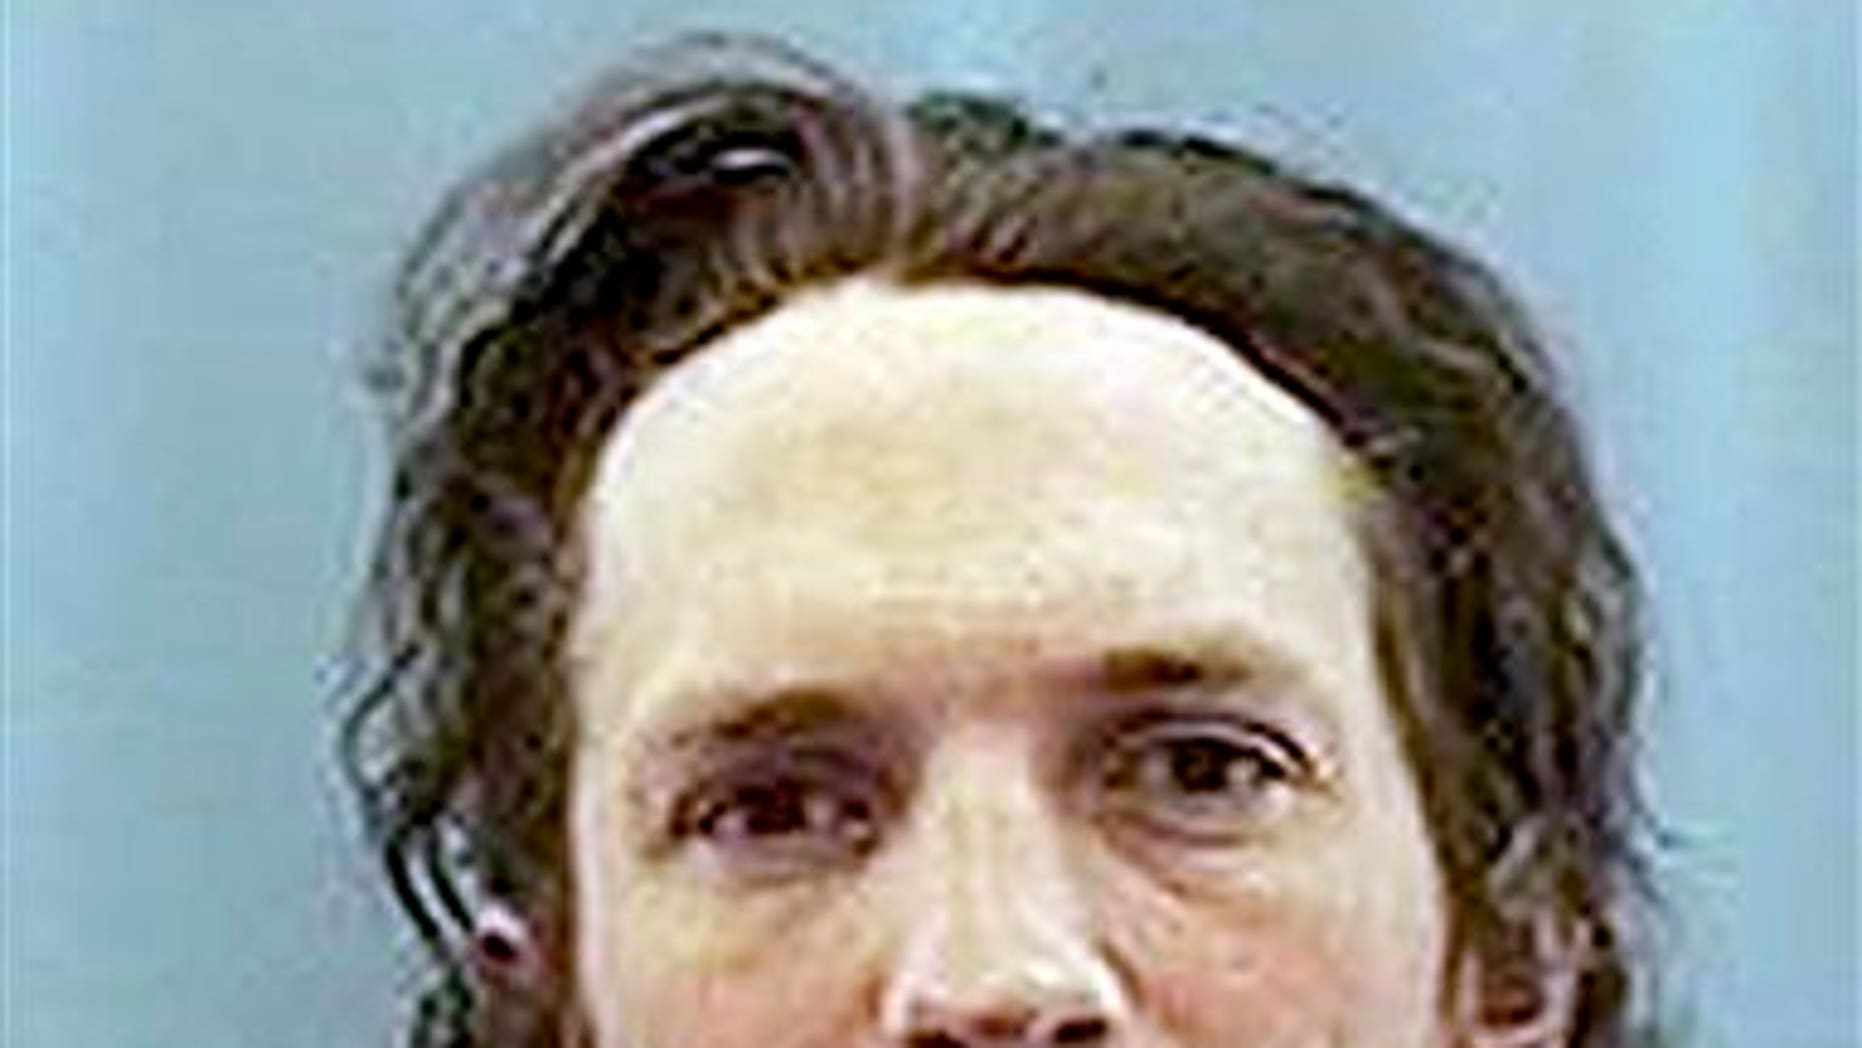 """FILE - This undated handout photo provided by the Anchorage Police Department shows Israel Keyes. An upcoming special episode of Investigation Discoverys """"Dark Minds"""" TV series to air April 2, 2014 says it has new information about confessed Alaska serial killer Israel Keyes, including the identity of a potential victim. (AP Photo/Anchorage Police, file)"""